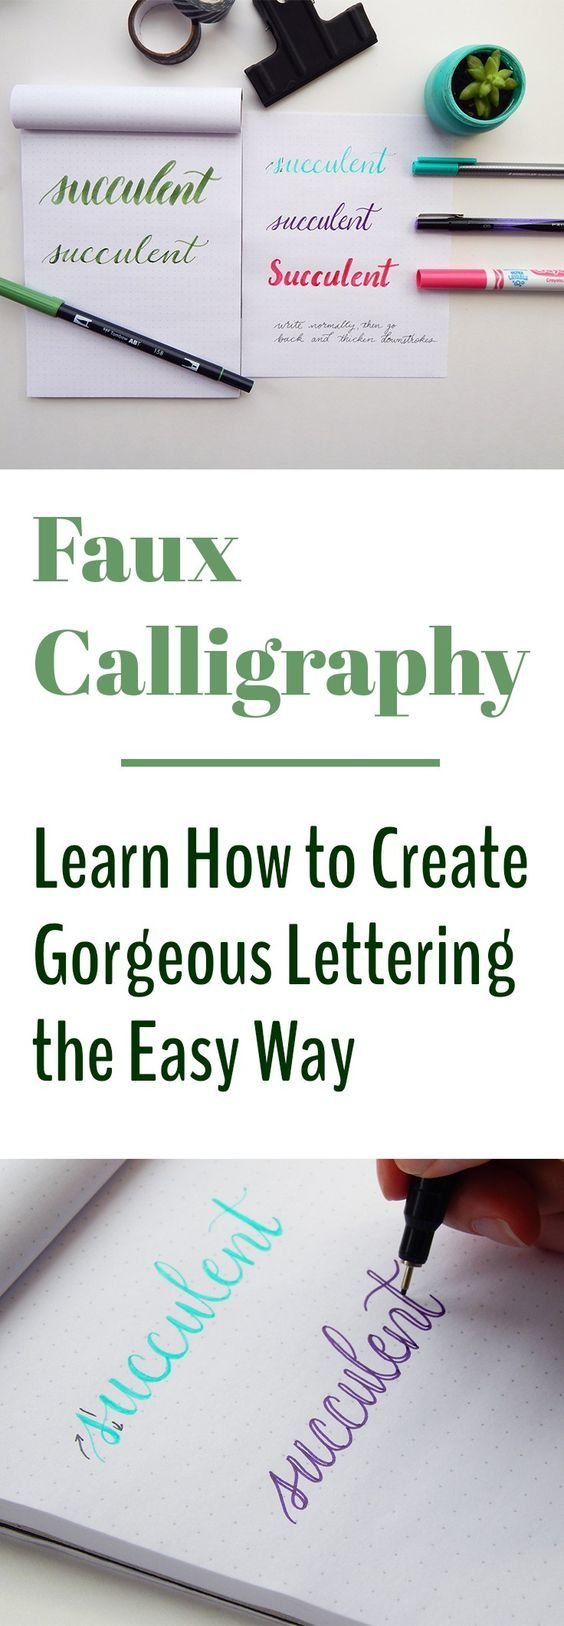 Looking at all the images of beautiful lettering online, it can be a bit daunting to get started. Where do you even begin? What materials do you need? With faux calligraphy, you can learn the basic principles of calligraphy without buying expensive materials or spending hours with a drill book. This technique is easy to pick up and hard to put down!